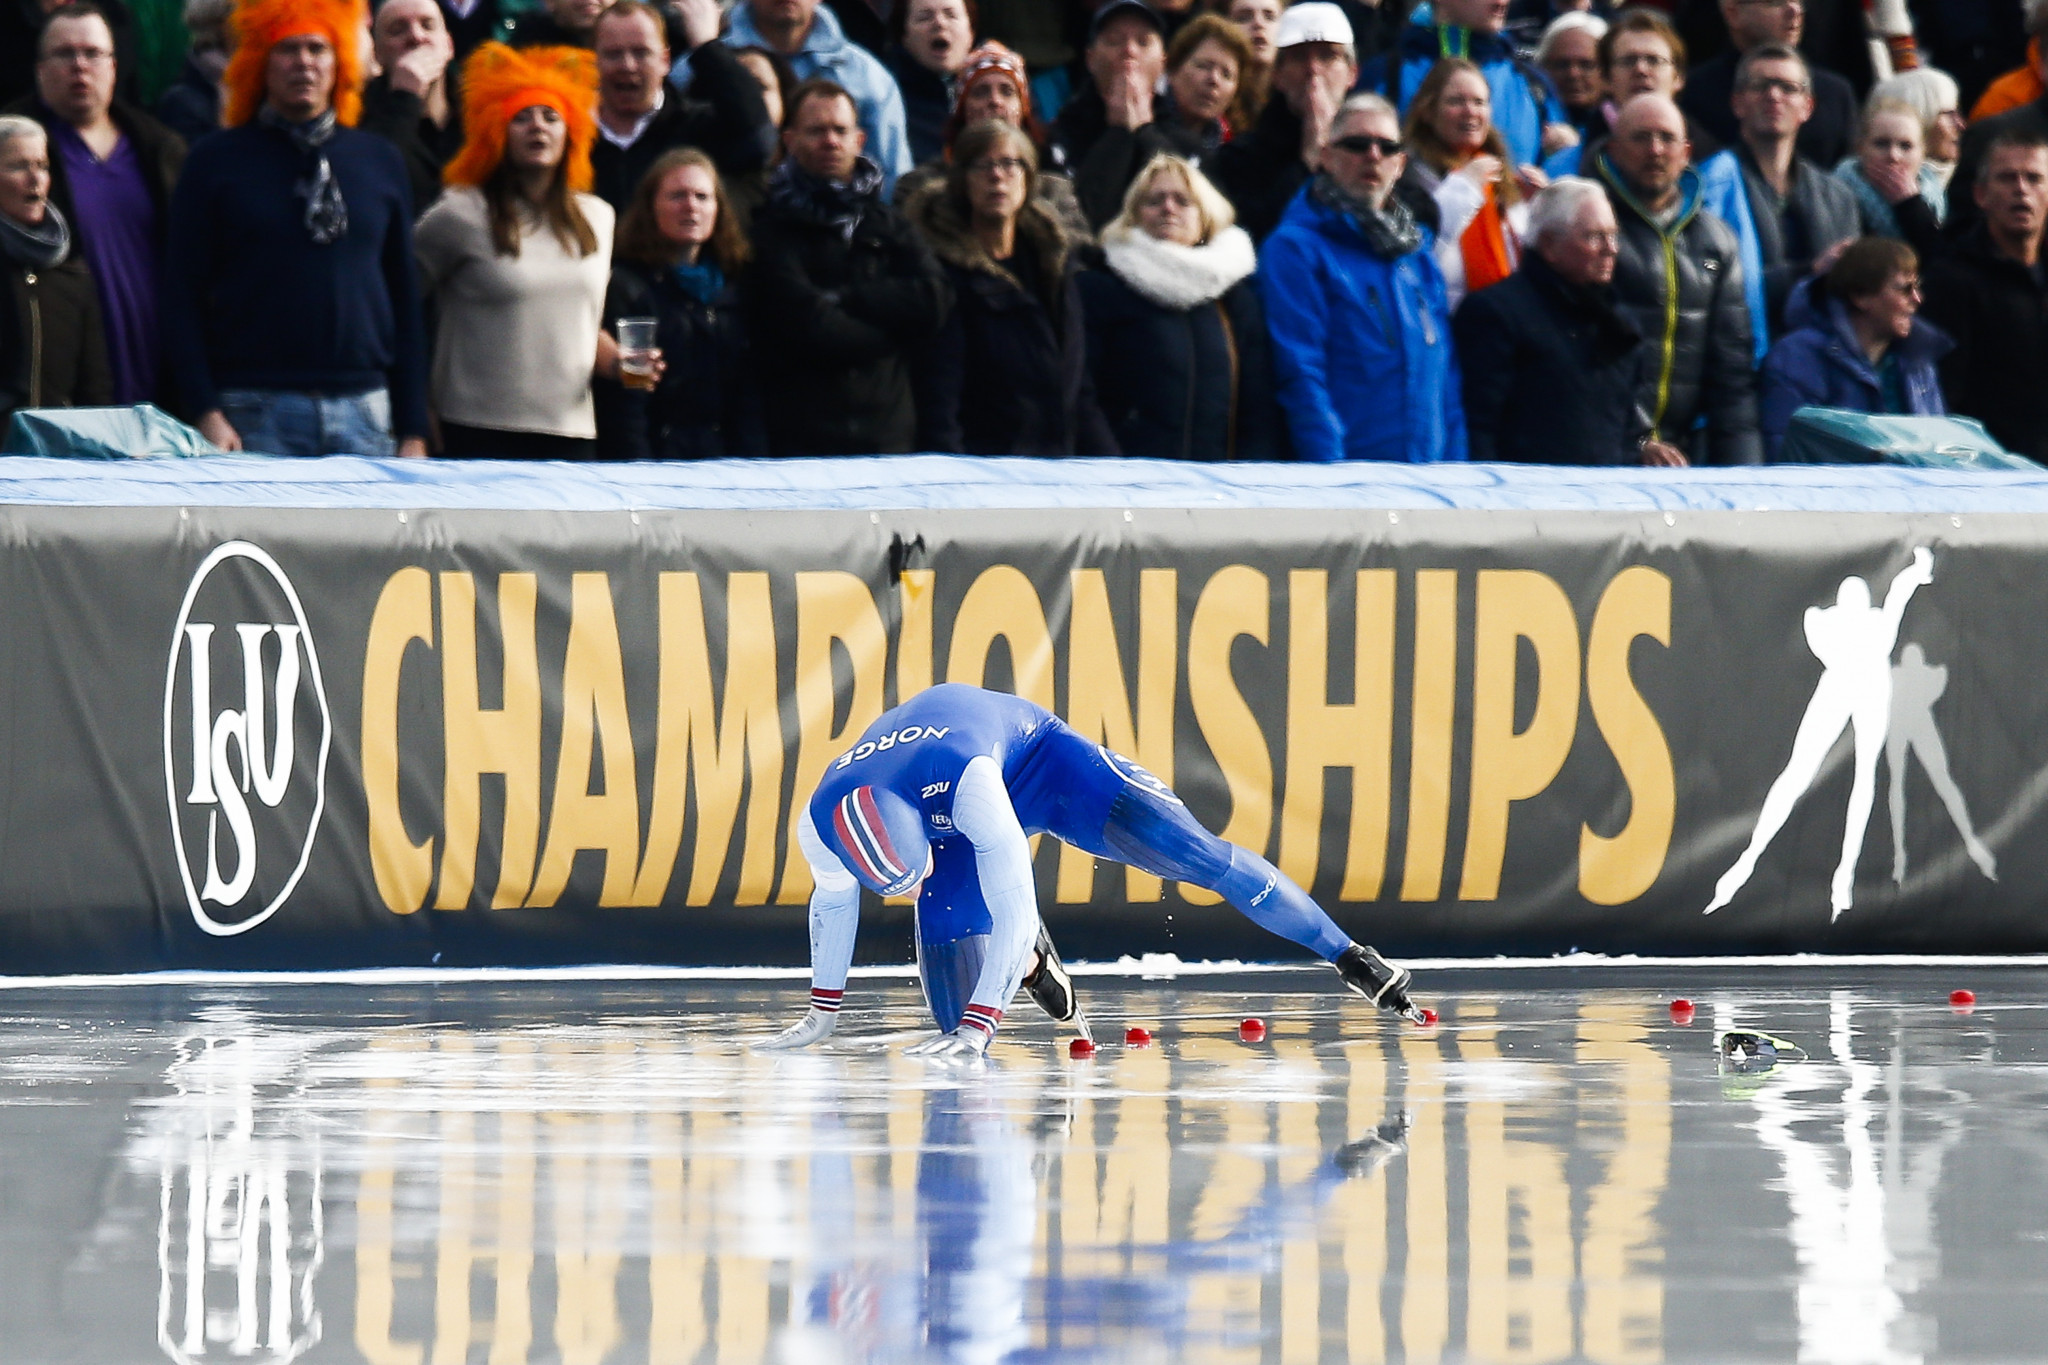 Roest takes ISU World Allround Speed Skating title as Pedersen crashes out in Amsterdam